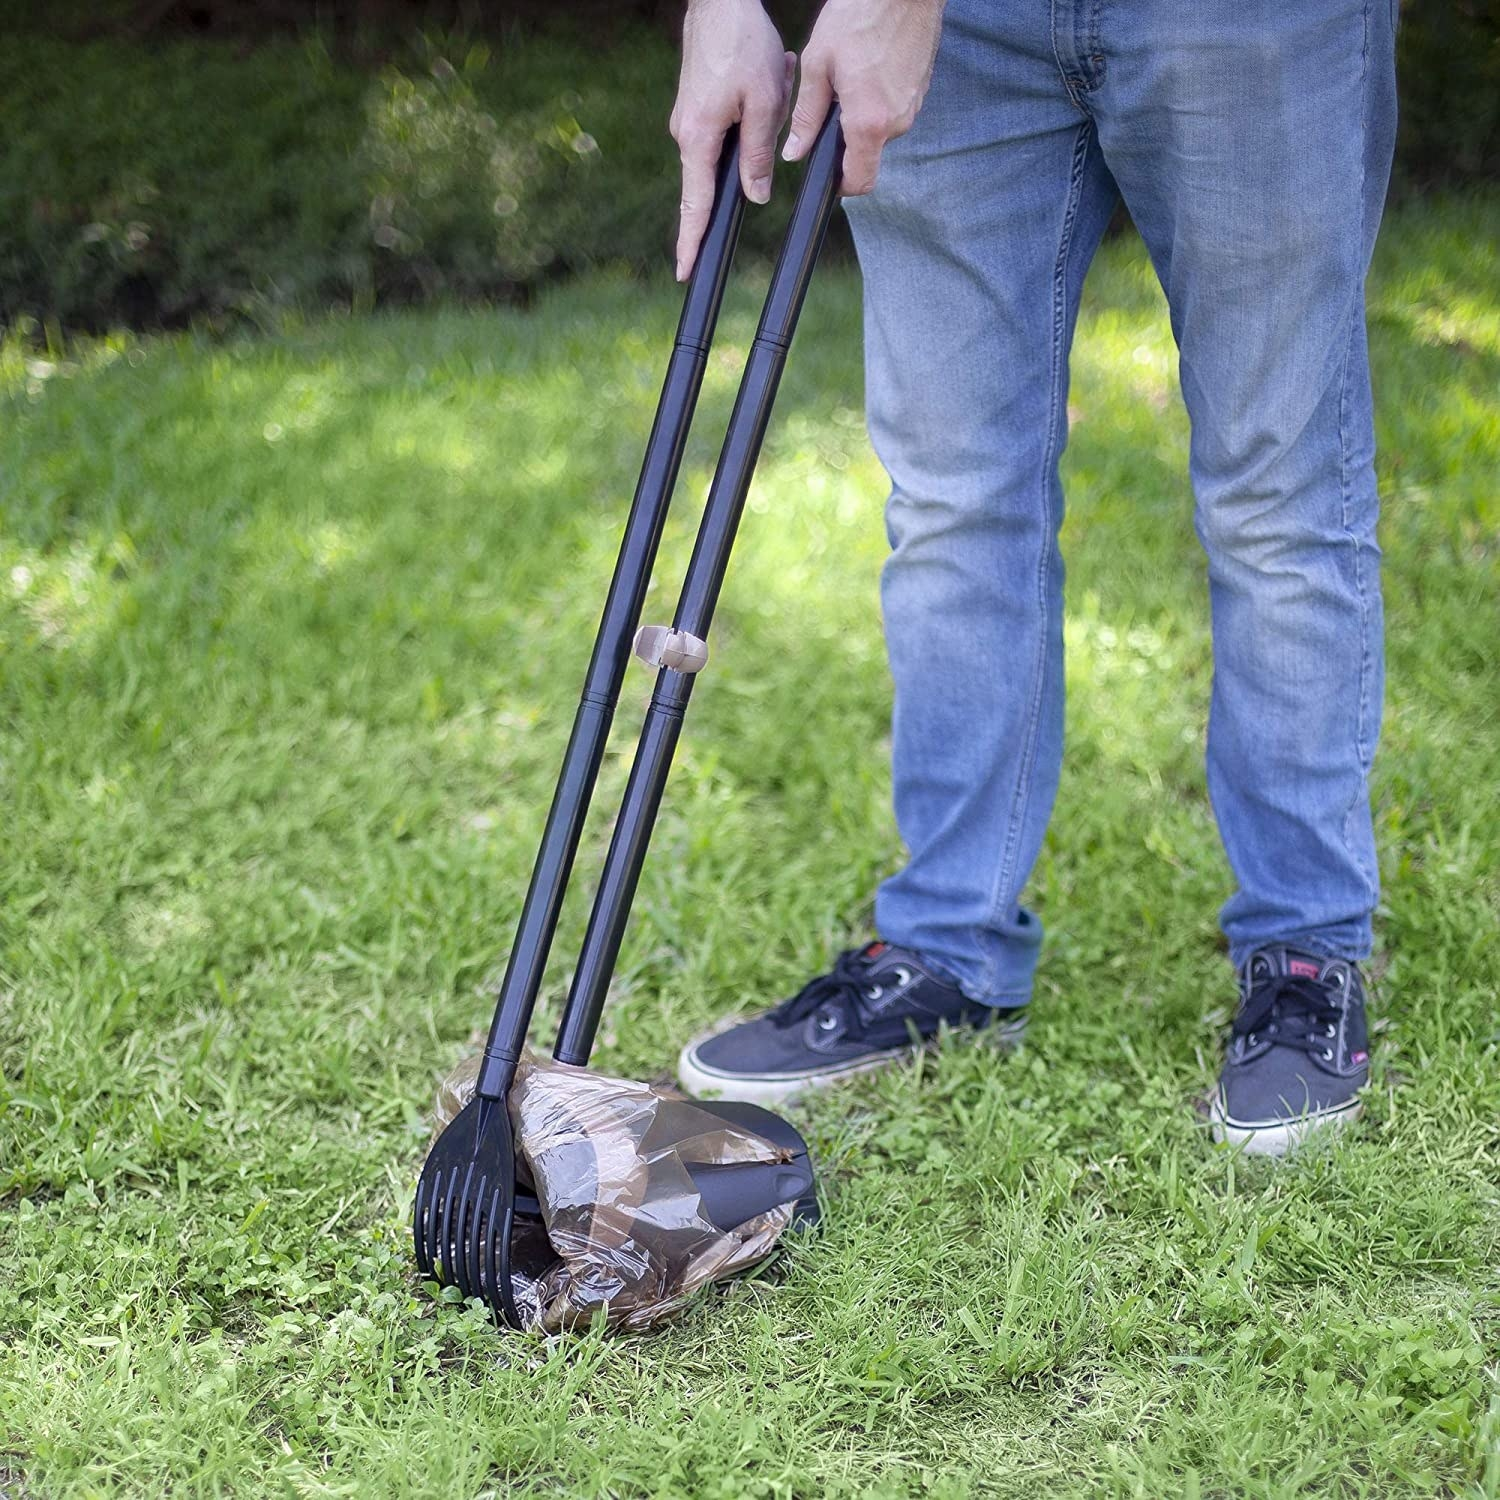 Black scooper and rake with a brown plastic bag covering